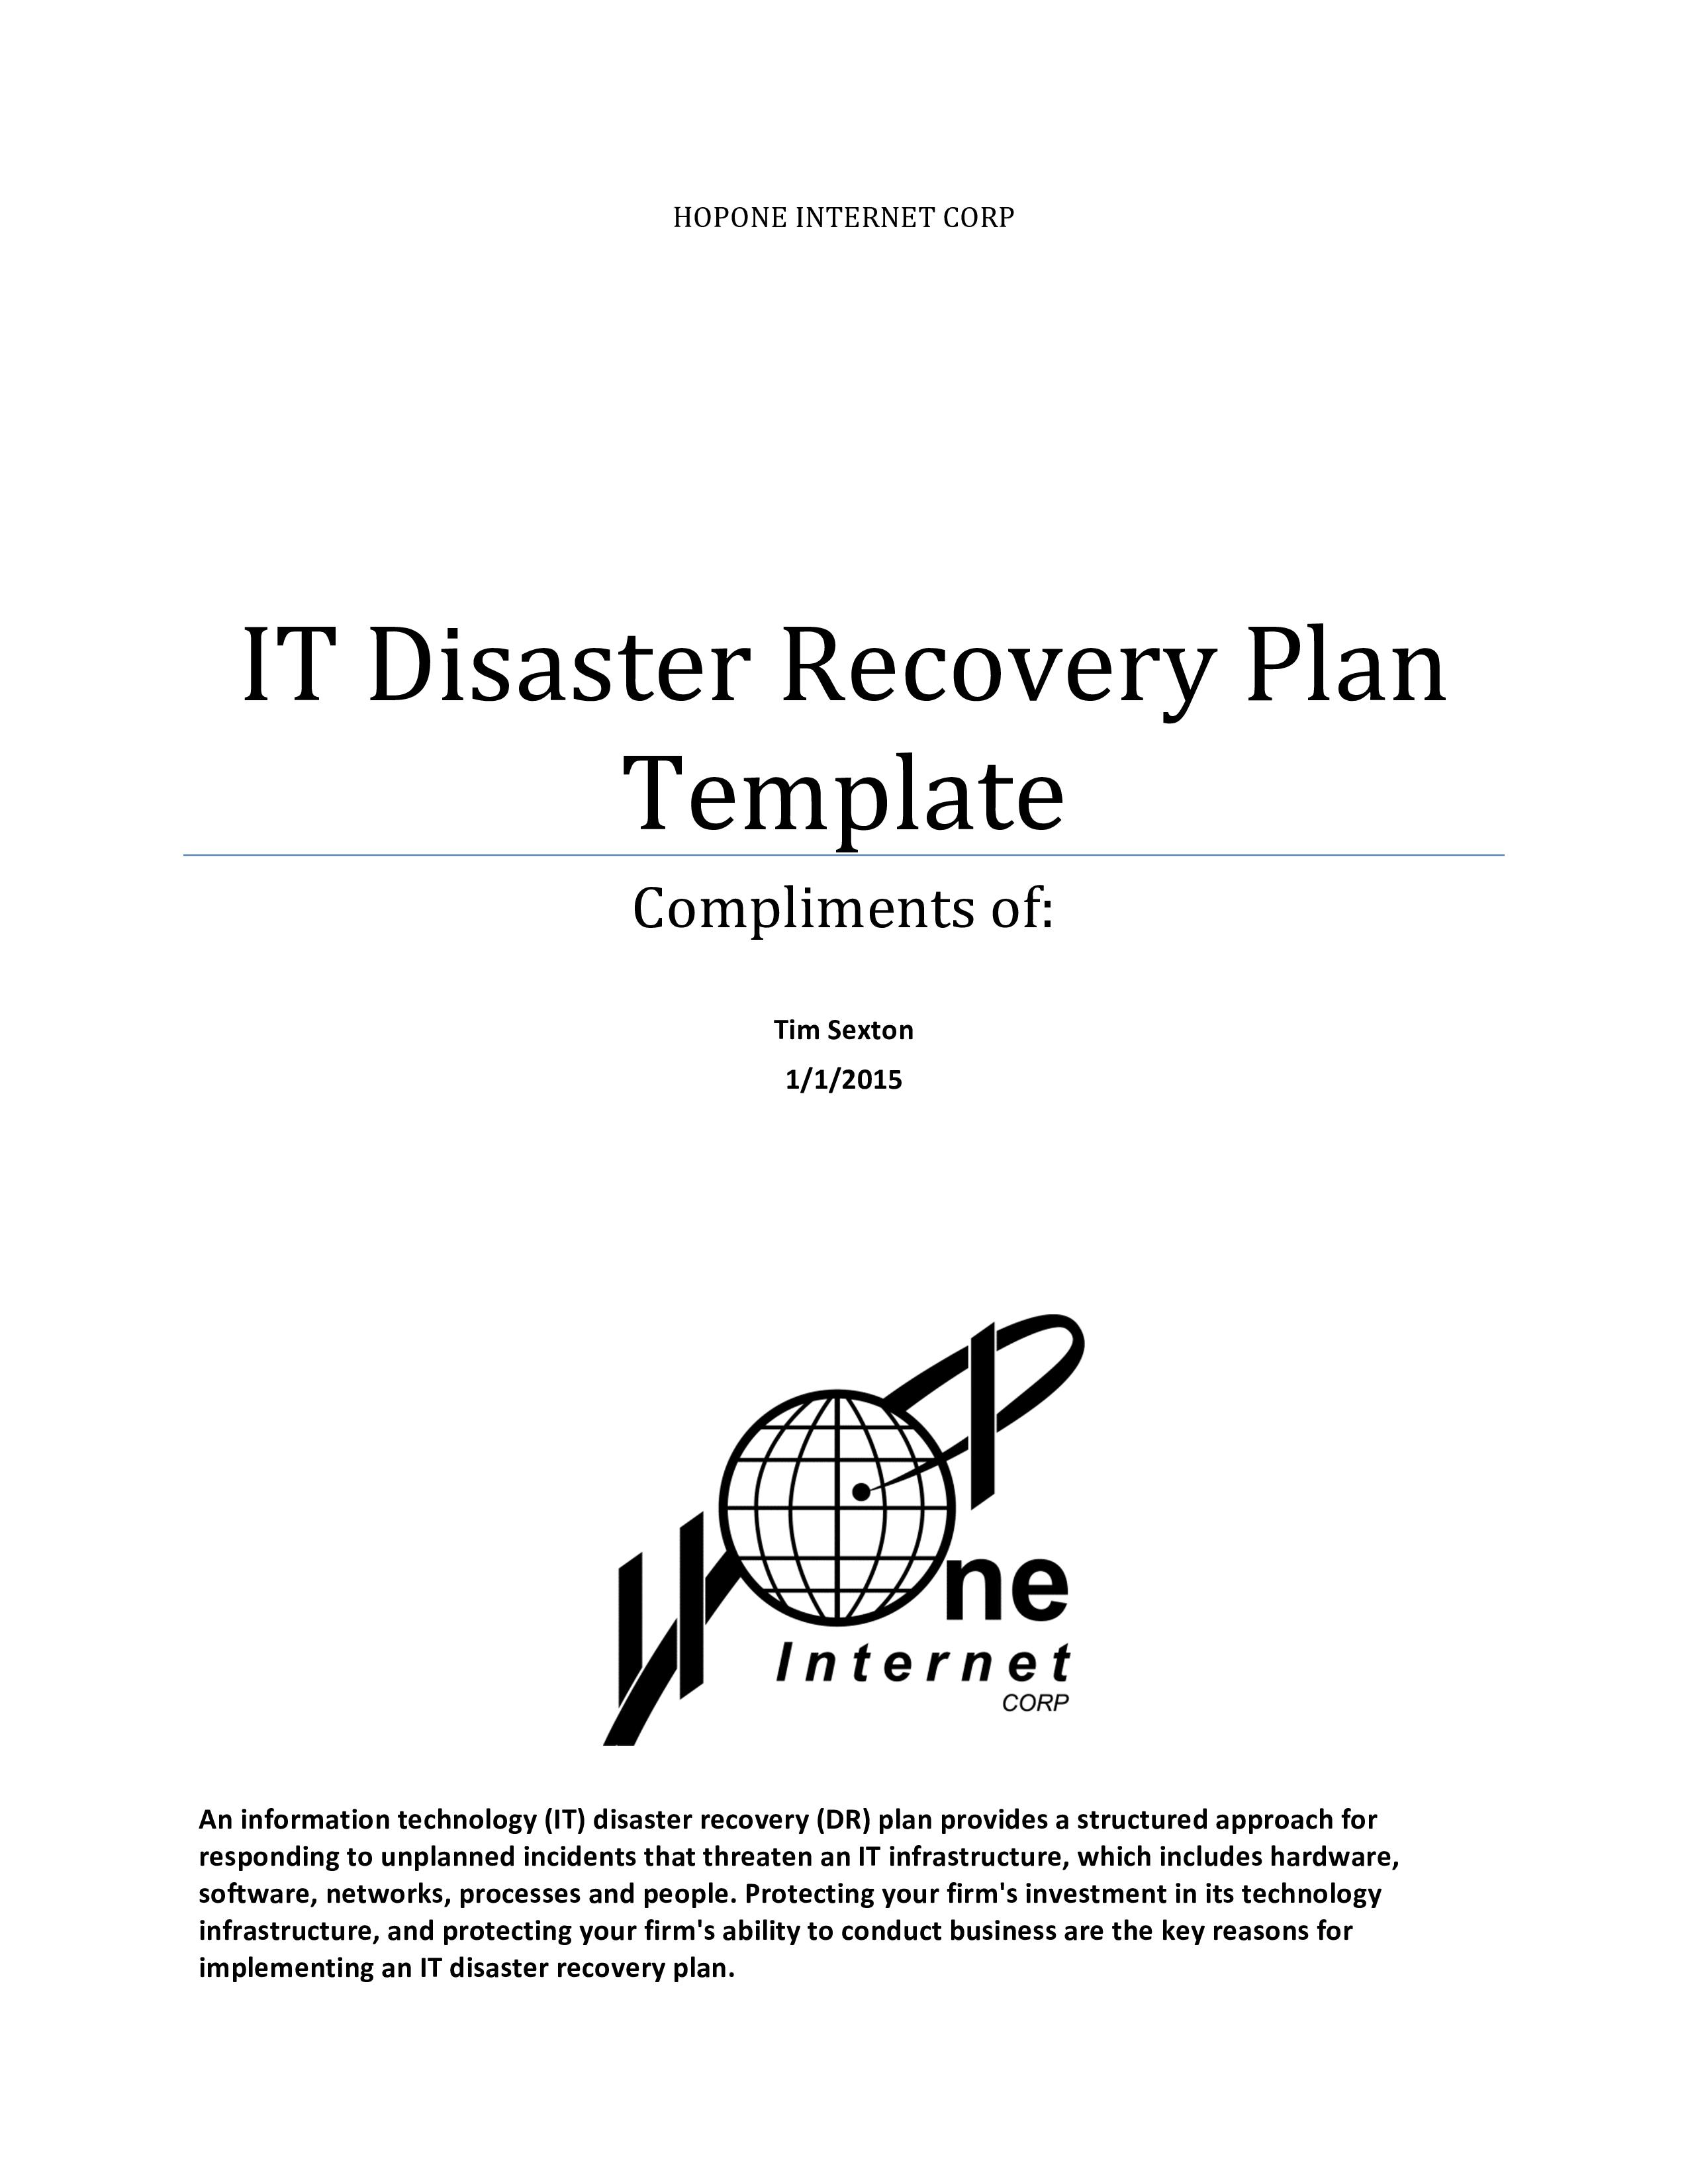 Disaster Recovery Plan Templates Free